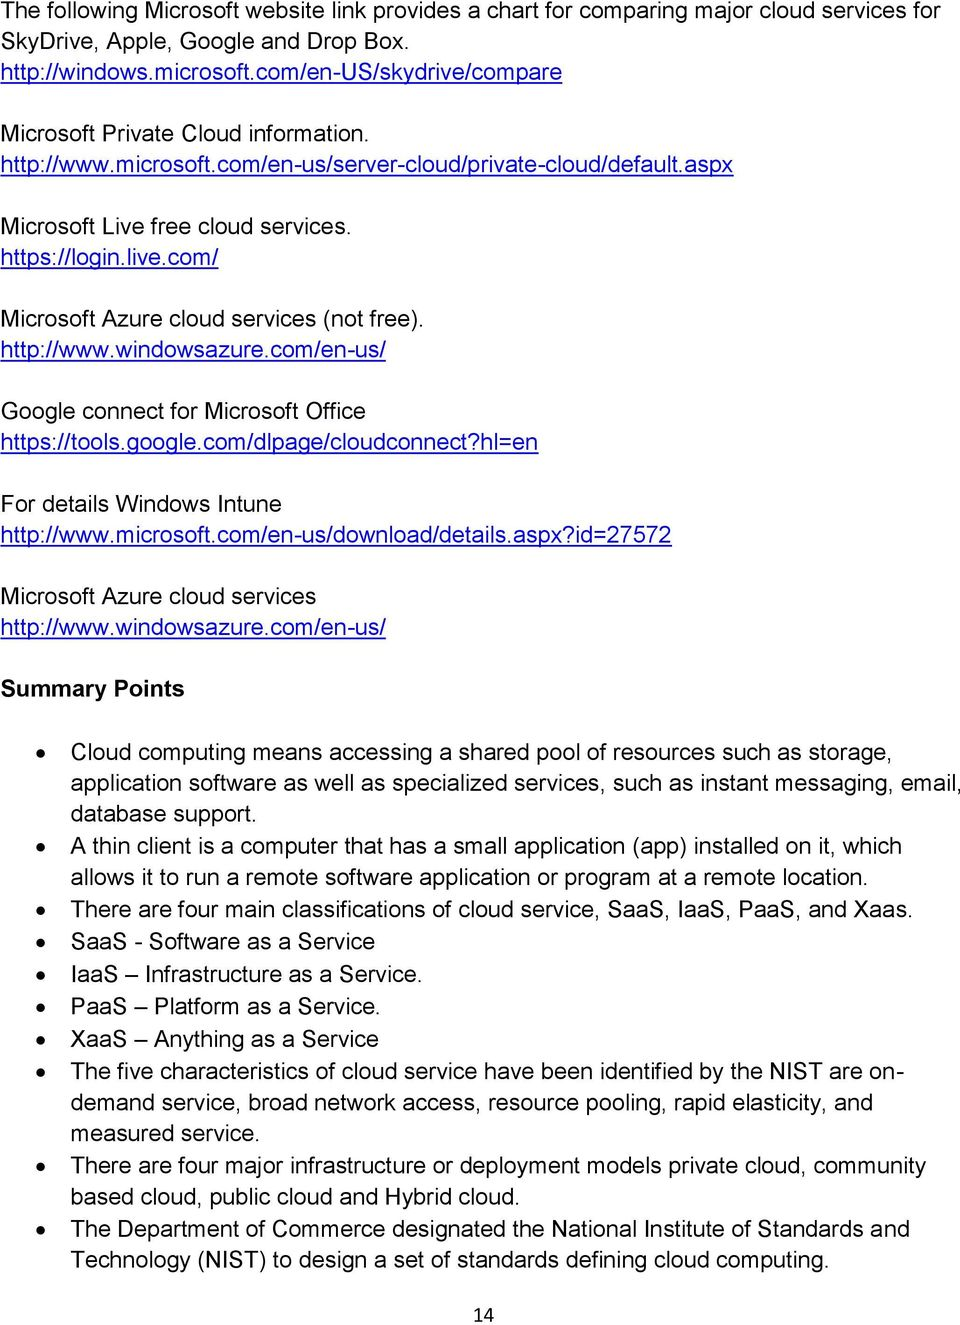 com/ Microsoft Azure cloud services (not free). http://www.windowsazure.com/en-us/ Google connect for Microsoft Office https://tools.google.com/dlpage/cloudconnect?